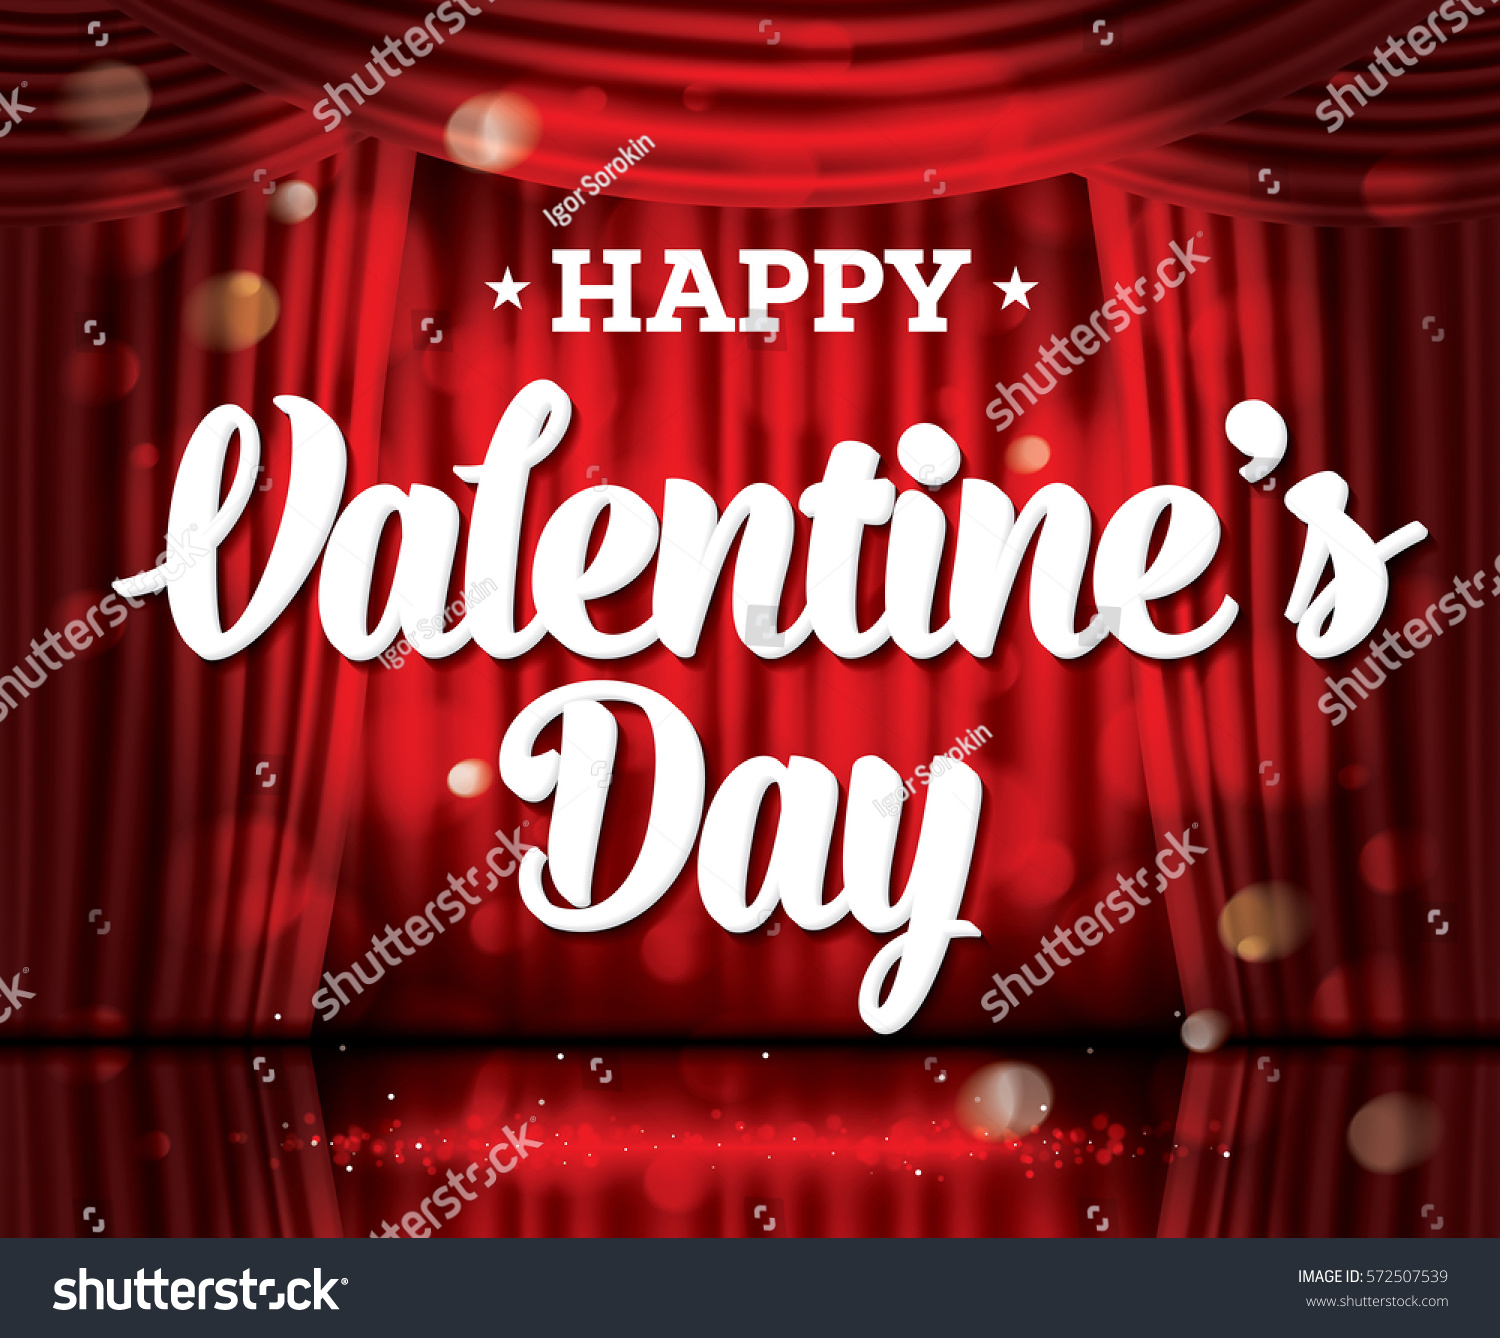 Happy Valentineu0027s Day. Open Red Curtains With Neon Lights And Copy Space.  Vector Illustration